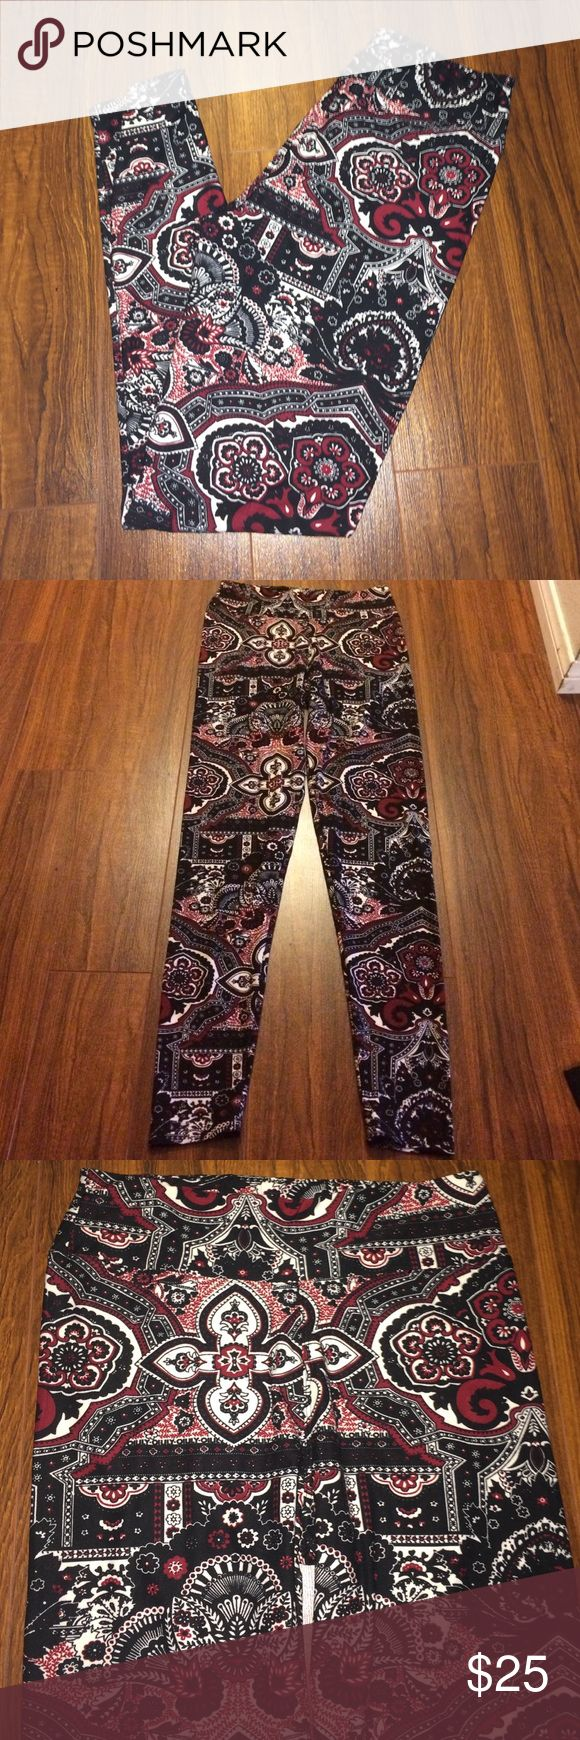 Mandala print bohemian buttery soft leggings Mandala print bohemian buttery soft leggings! Size large! (but super stretchy so can fit a larger or smaller sizes as well) amazing quality!!! Feel just like my Lularoe leggings!!! For half the price! Crazy soft! Brand NEW!!! Pants Leggings